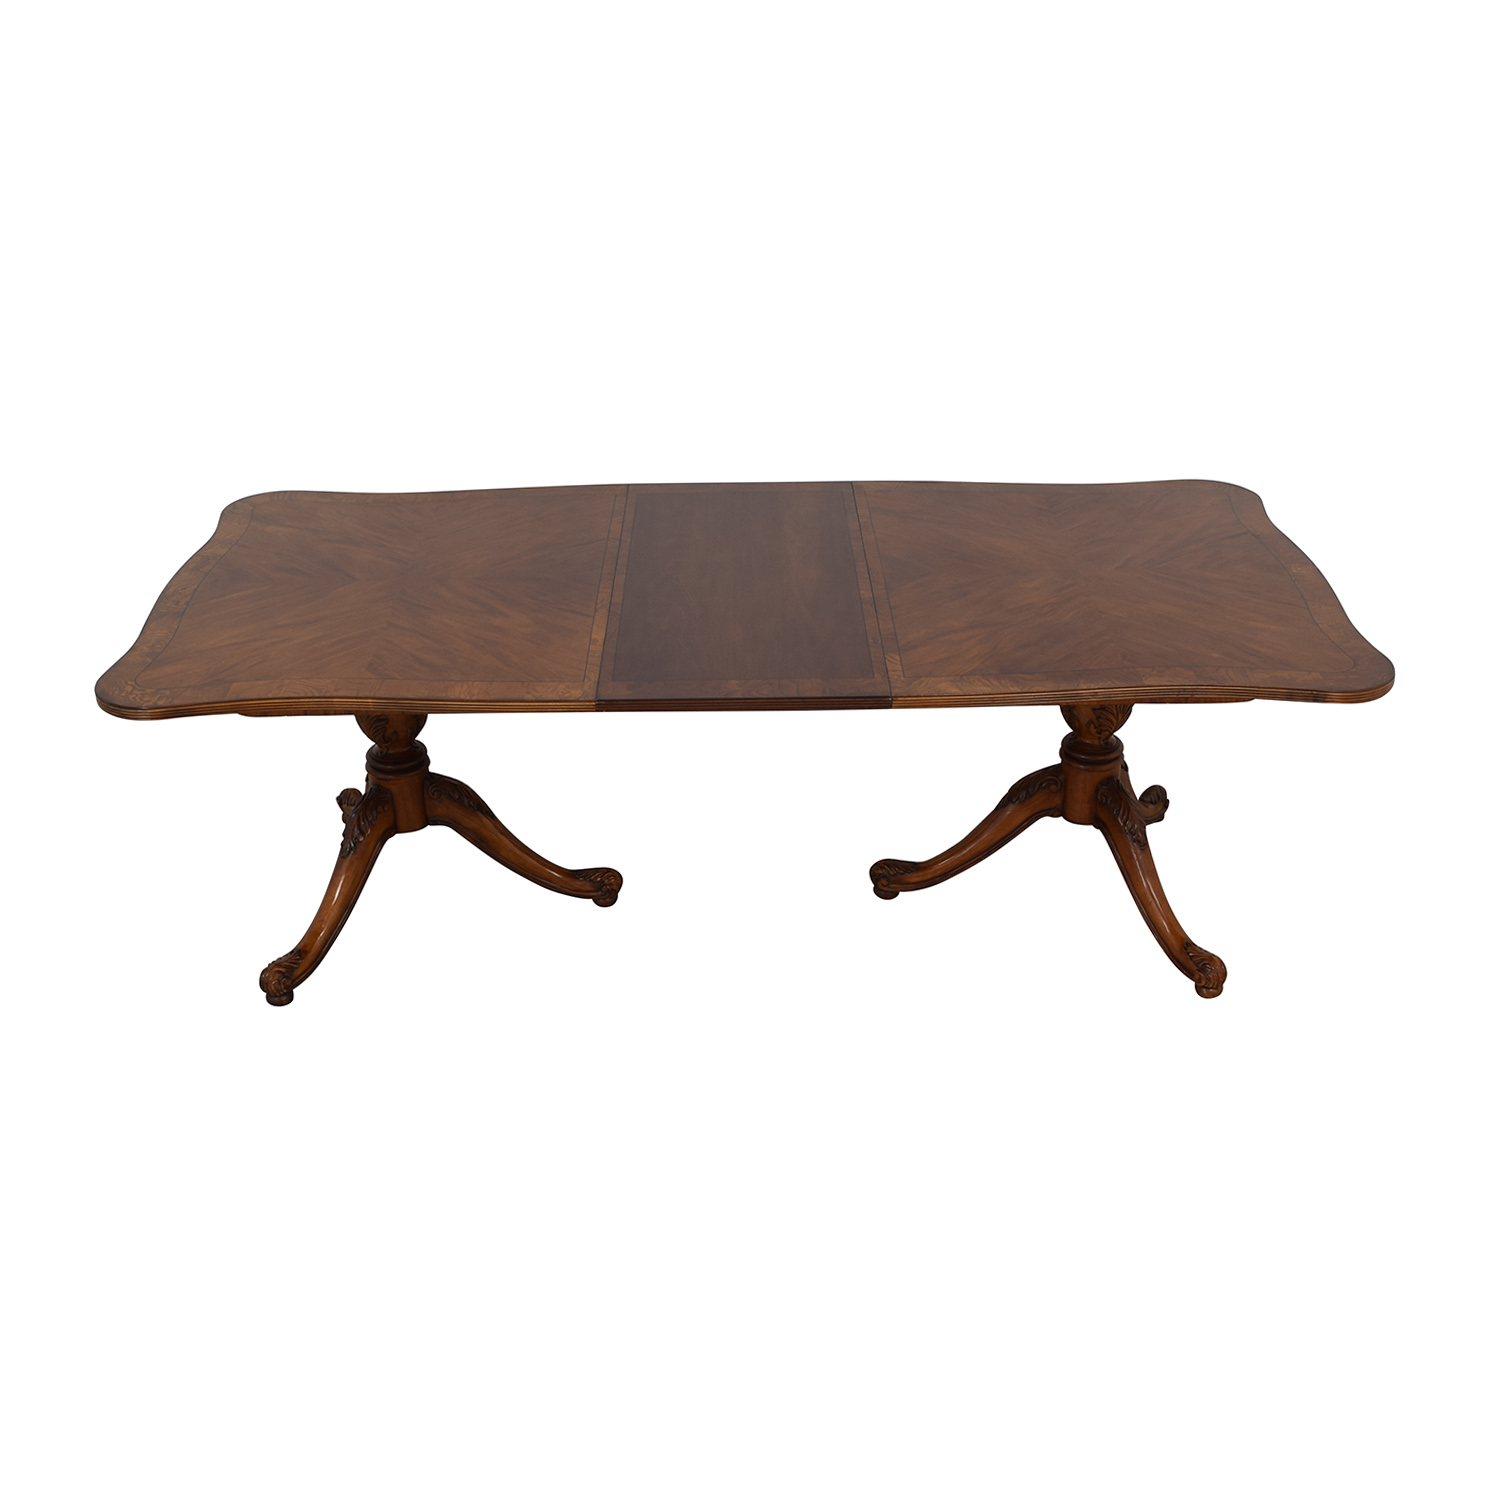 Drexel Heritage Drexel Heritage Dining Table for sale